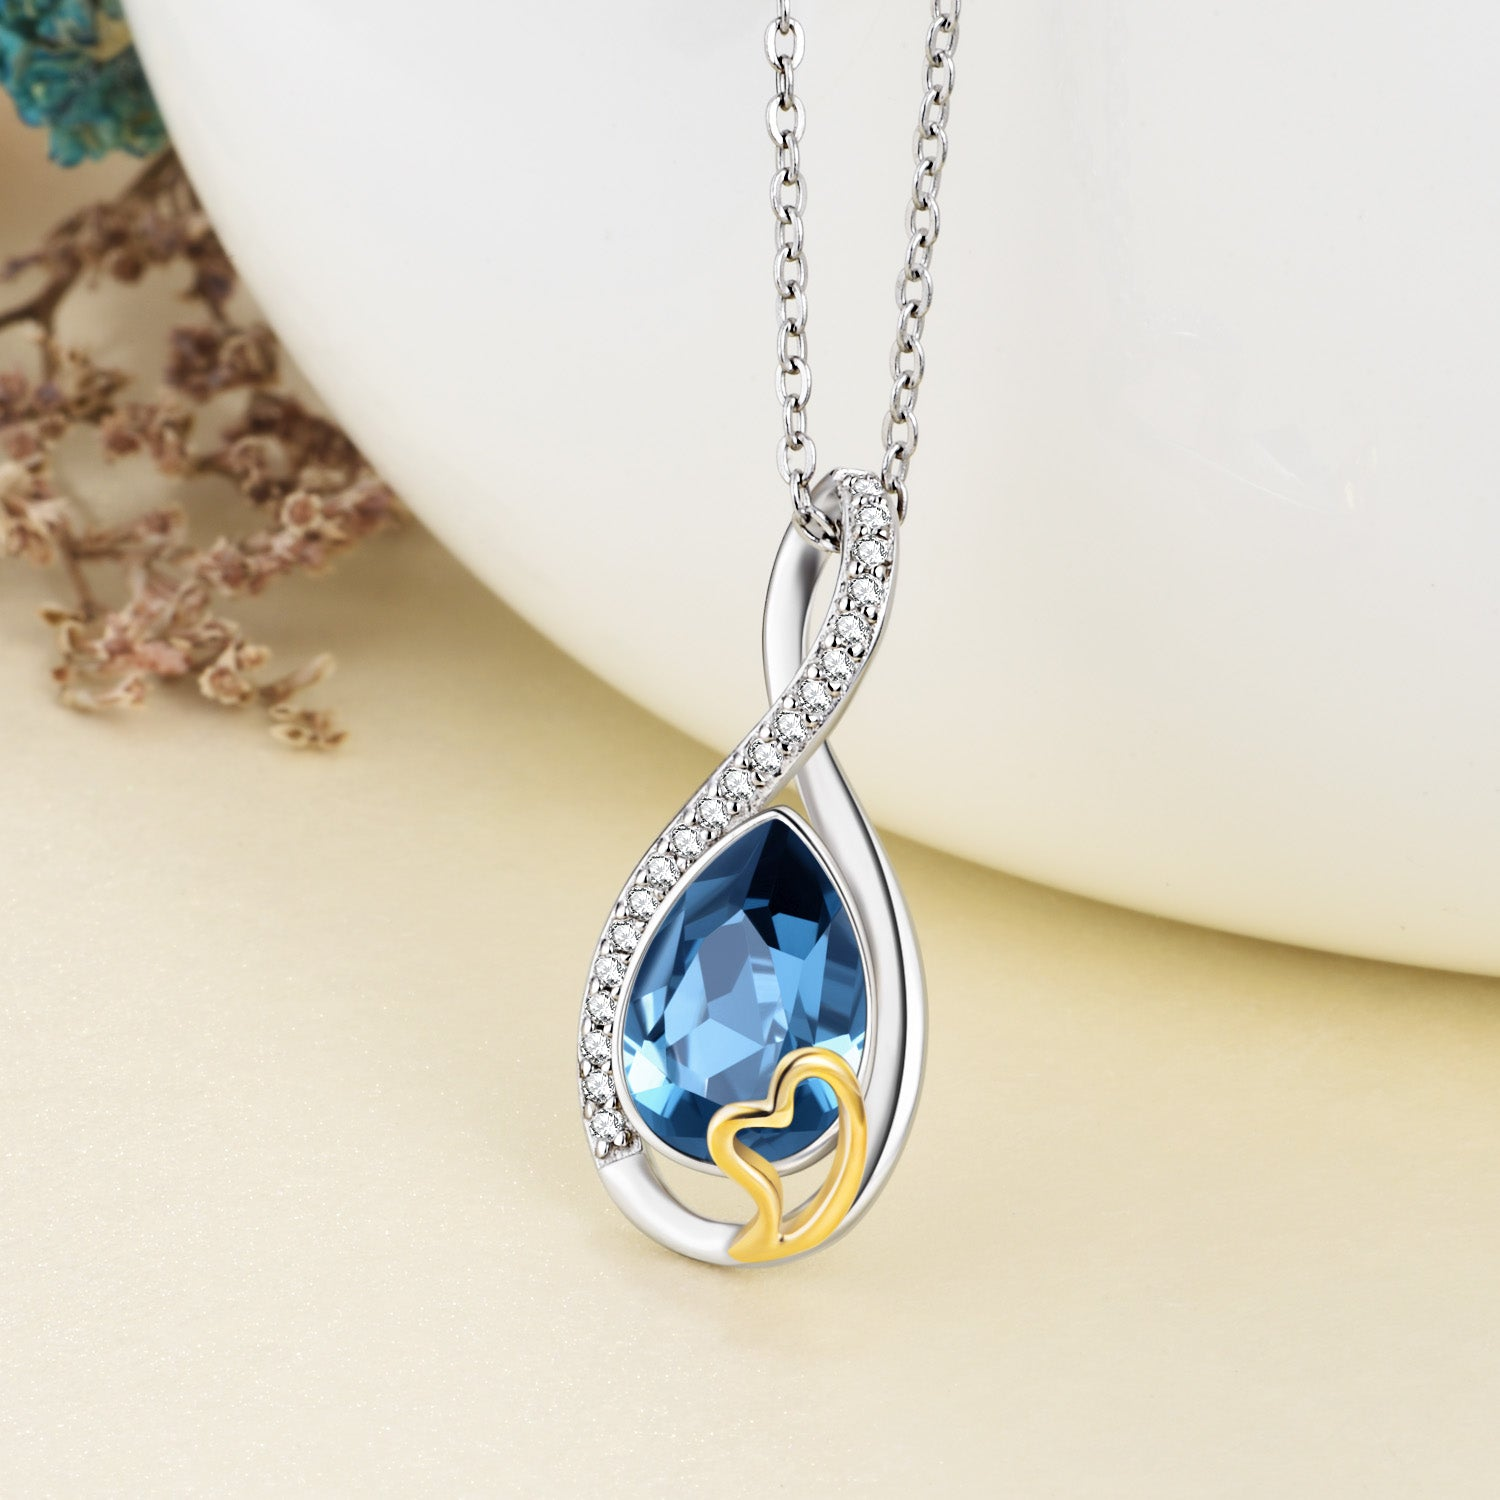 Crystal Infinity Necklace Water Drop Shaped Blue Gemstone Silver Necklaec